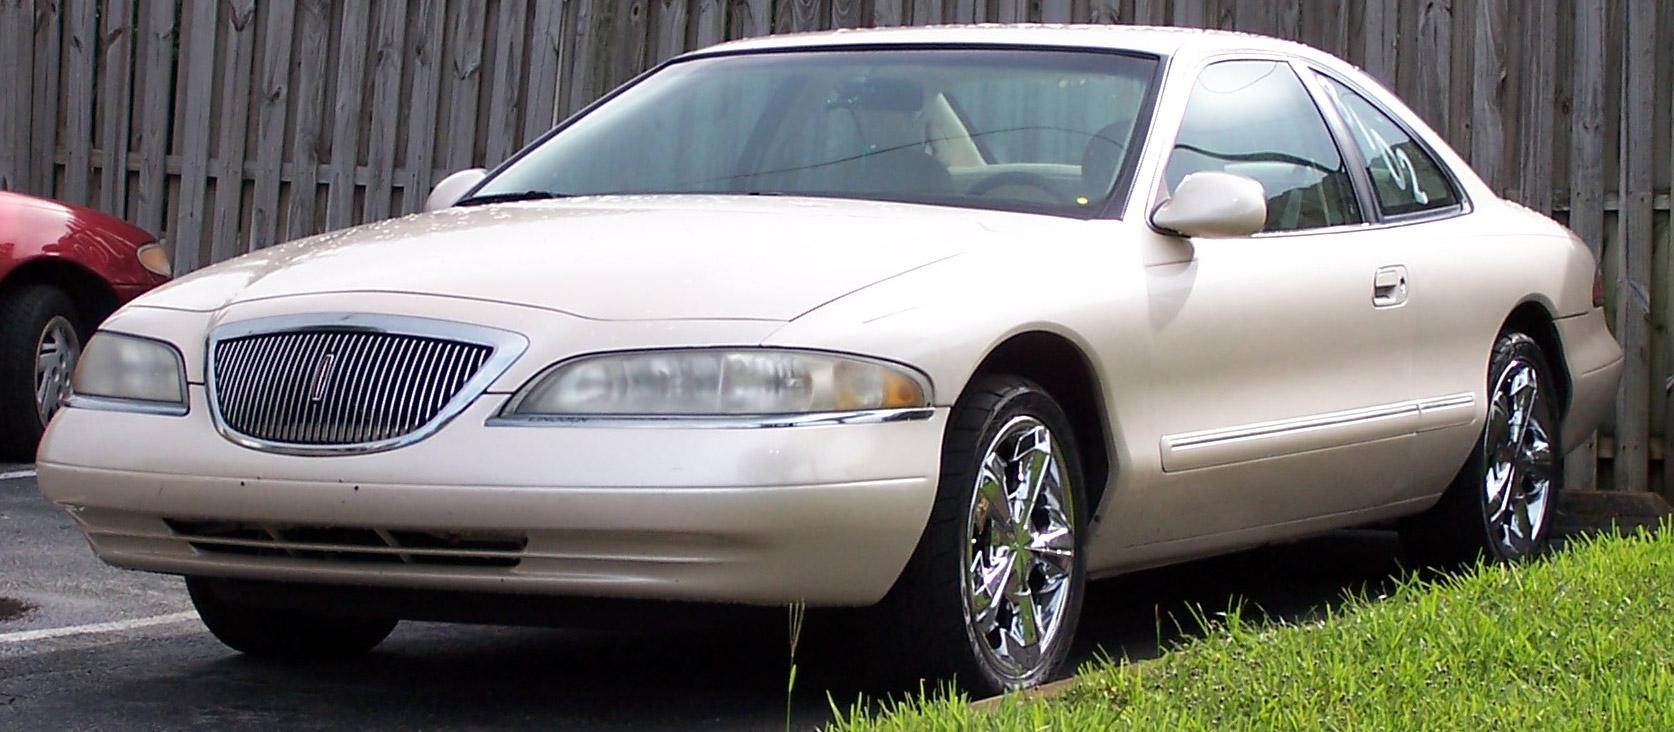 1998 Lincoln Mark VIII Base Model